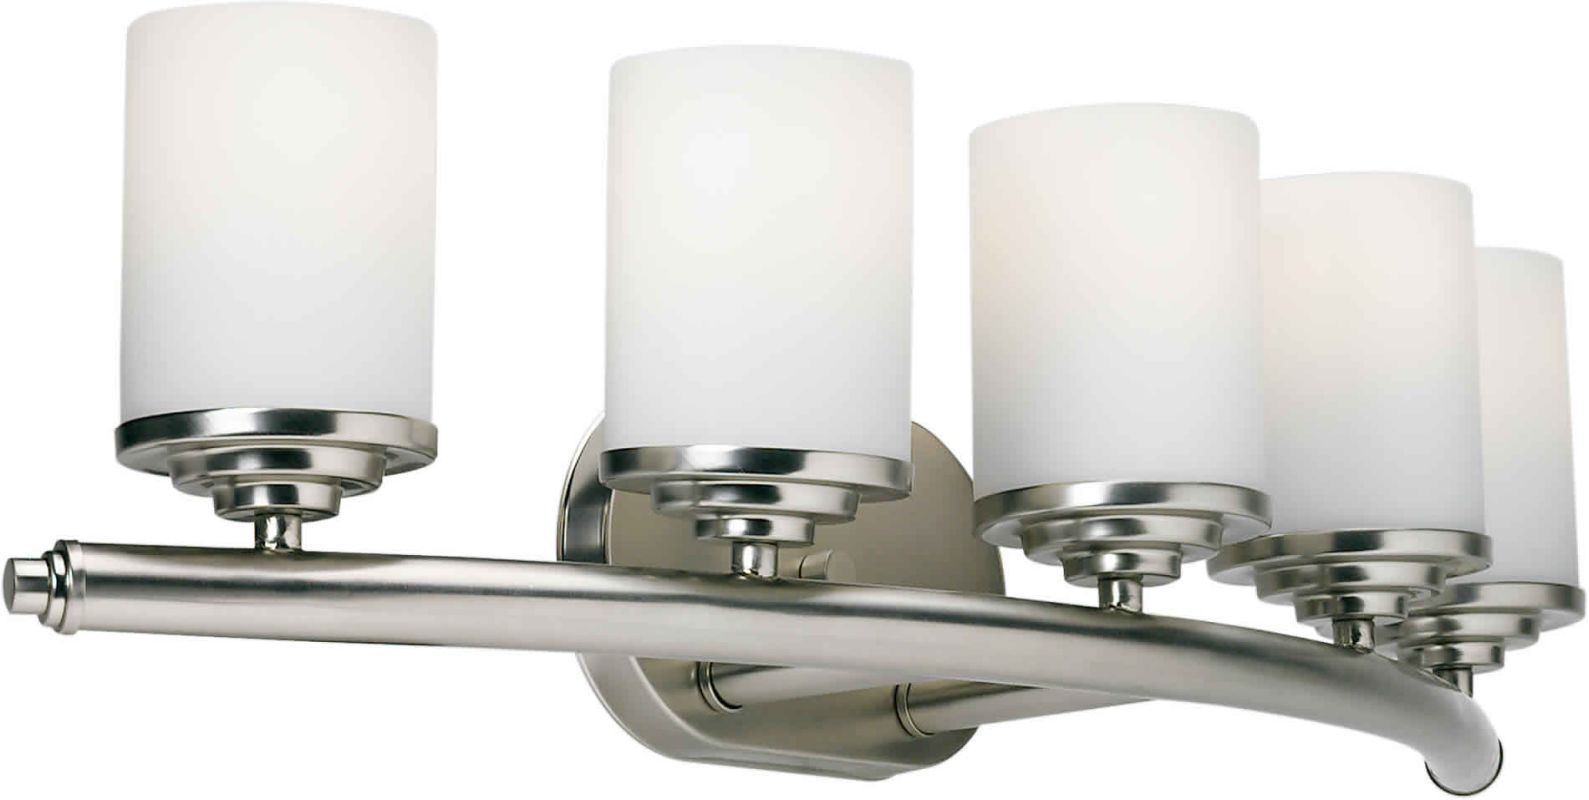 Forte Lighting 5105 05 55 Brushed Nickel 29 Quot Modern 5